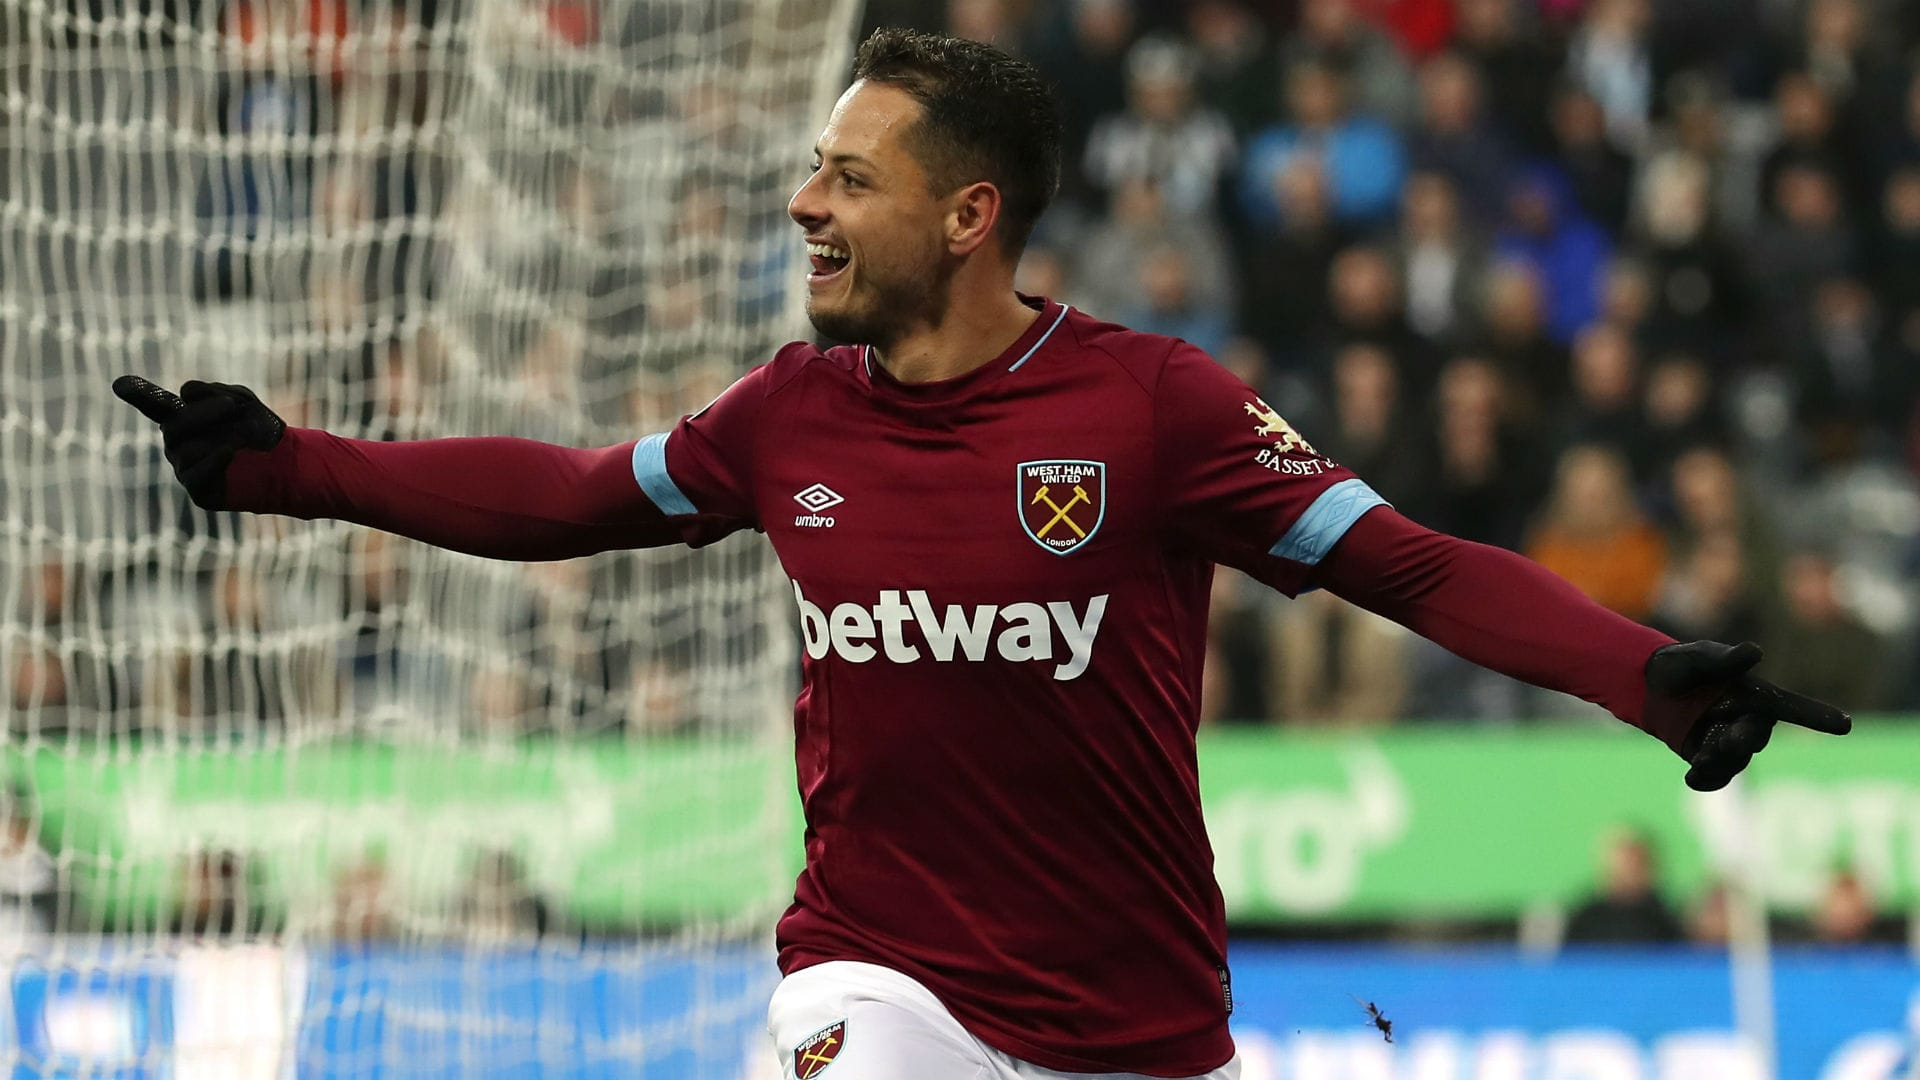 West Ham vs Cardiff Premier League 4/12/2018